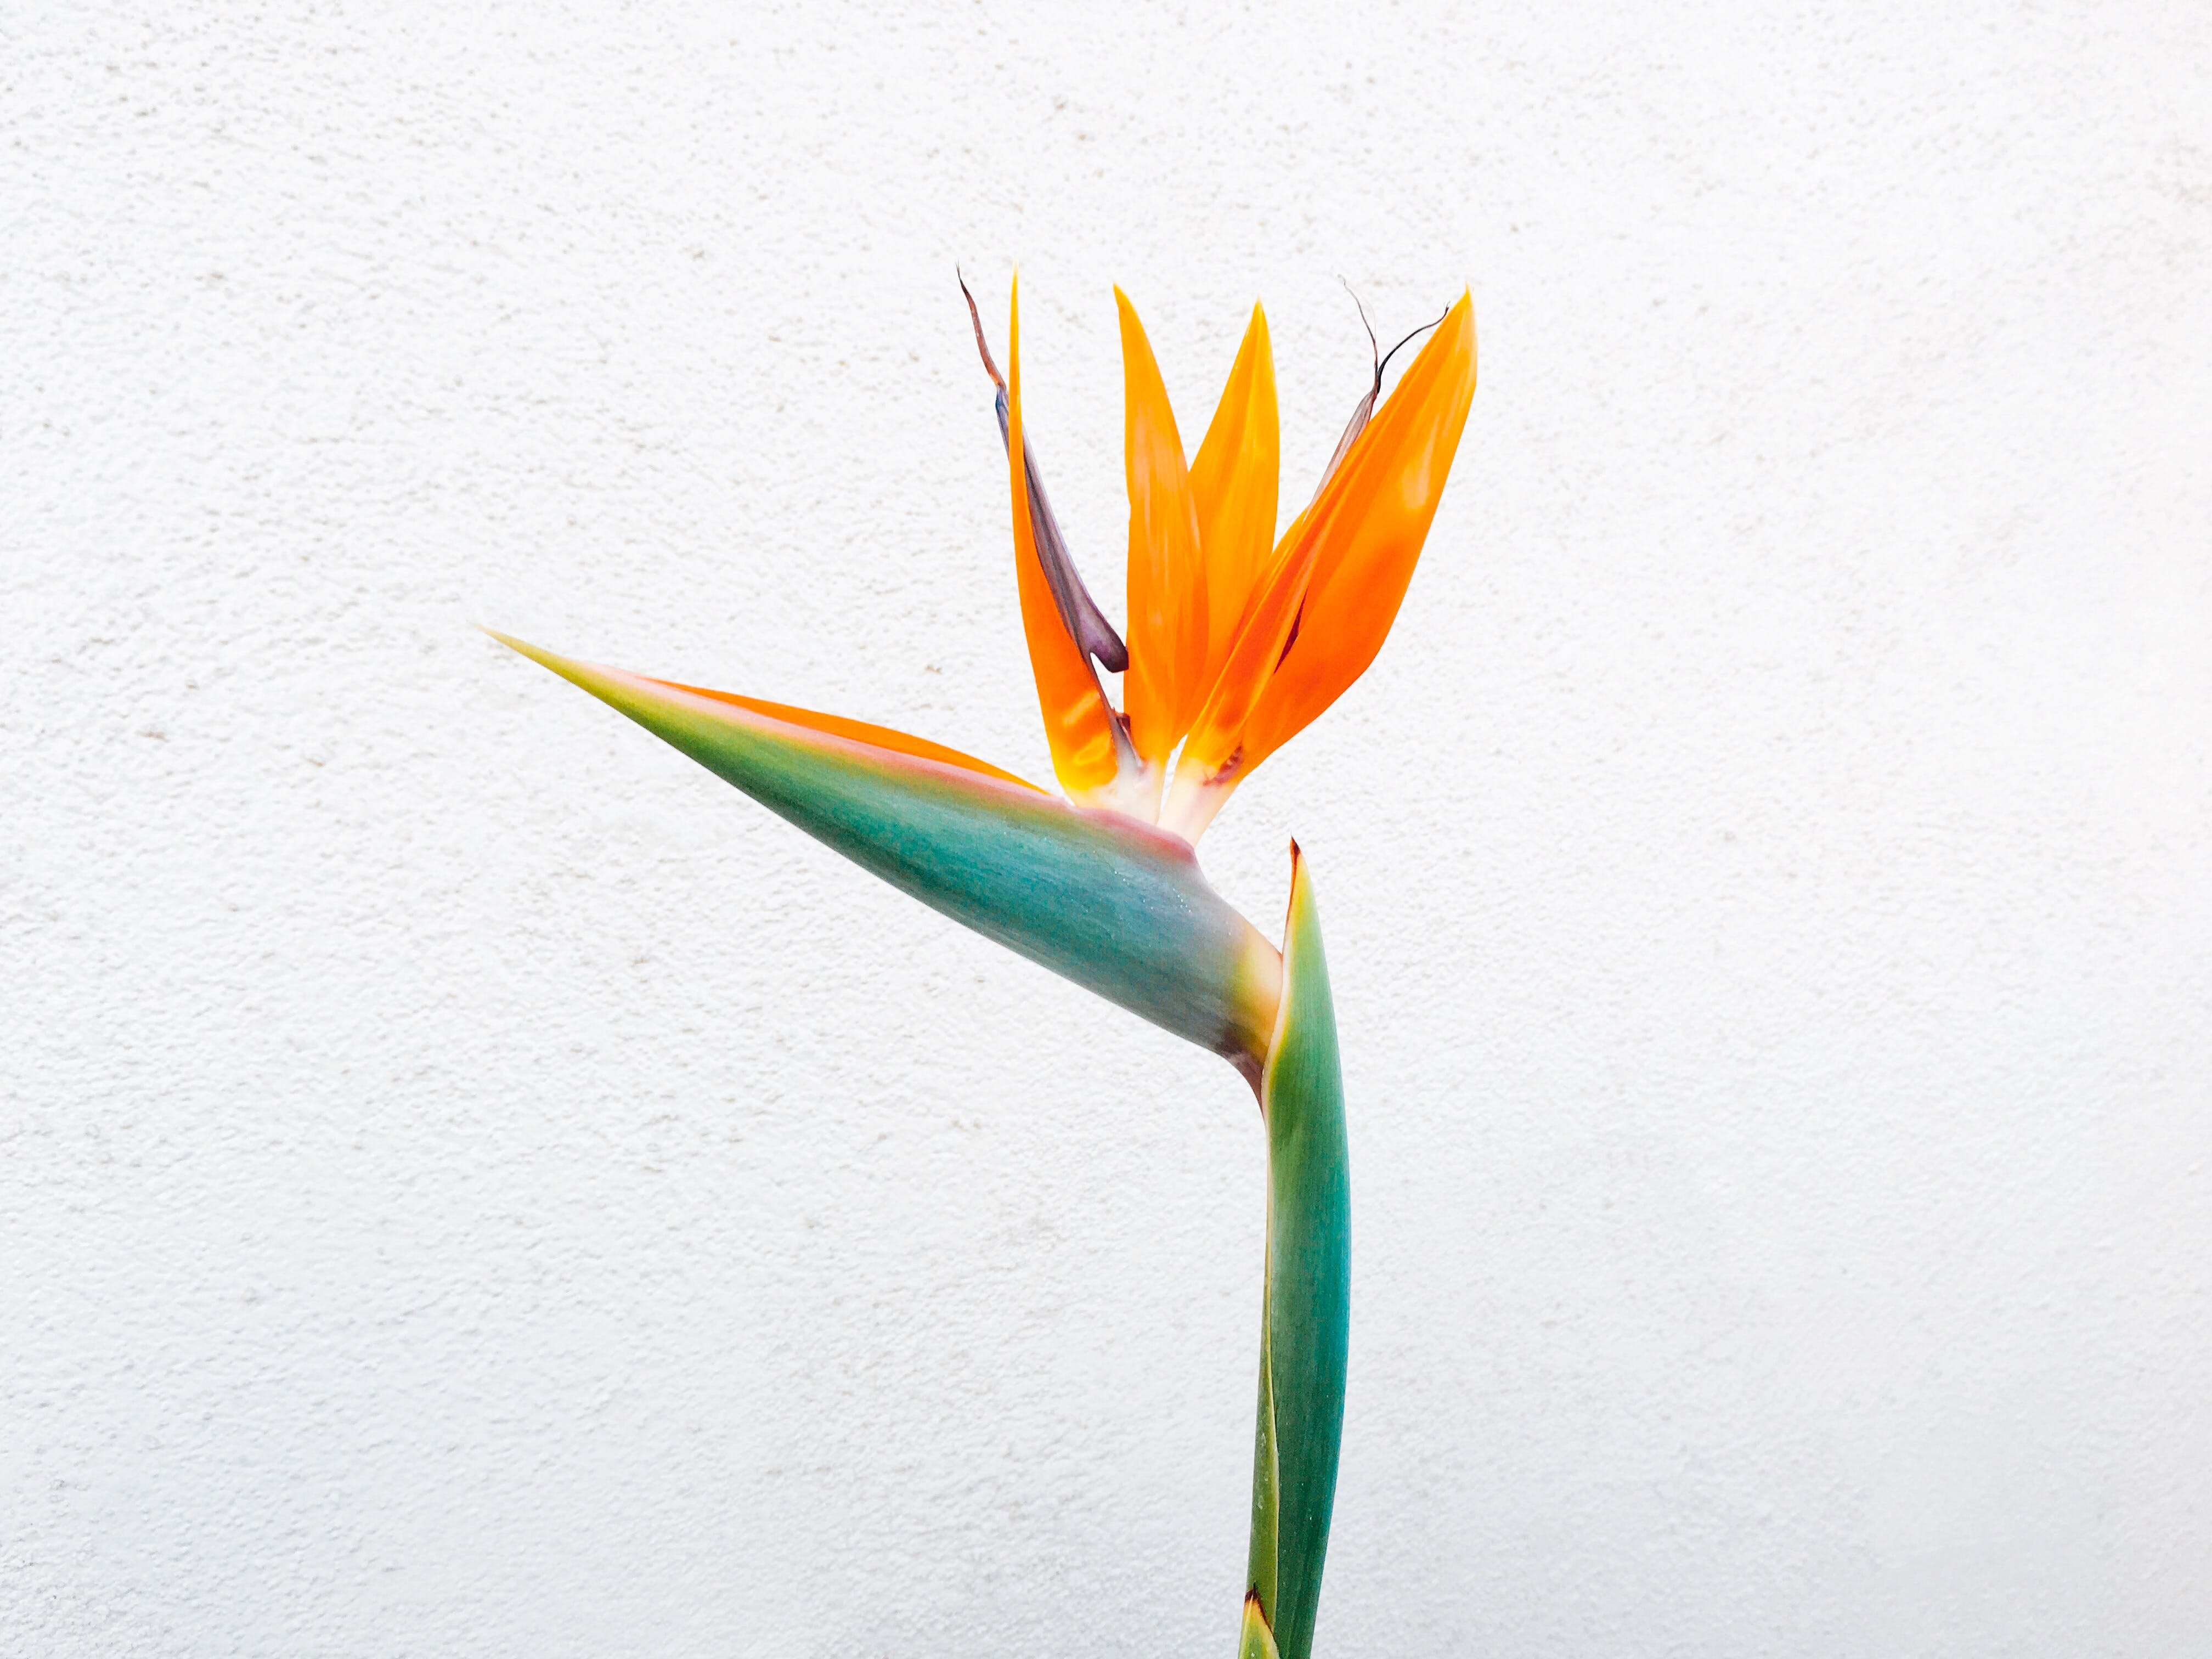 Orange Birds of Paradise Flower Closeup Photo